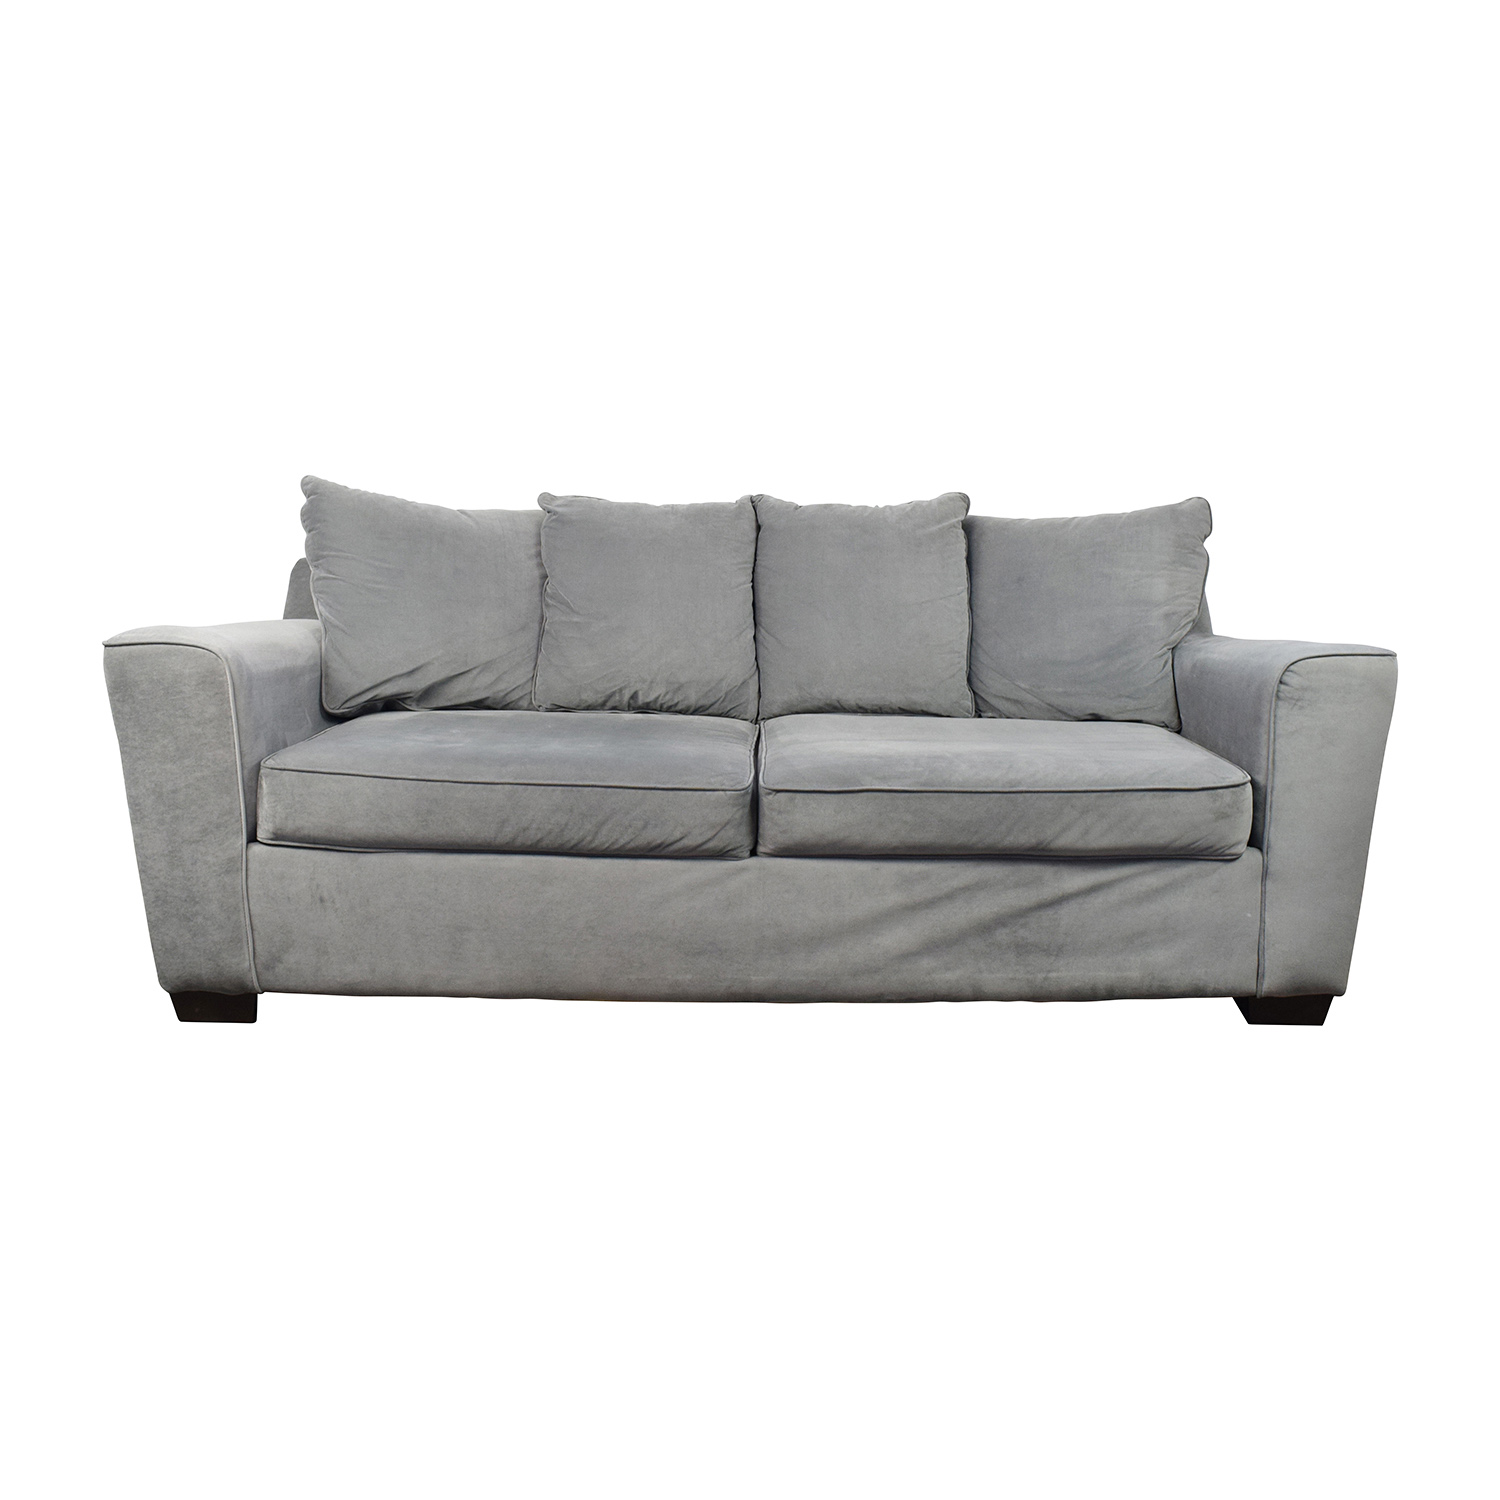 Jennifer Convertibles Gray Sofa / Sofas